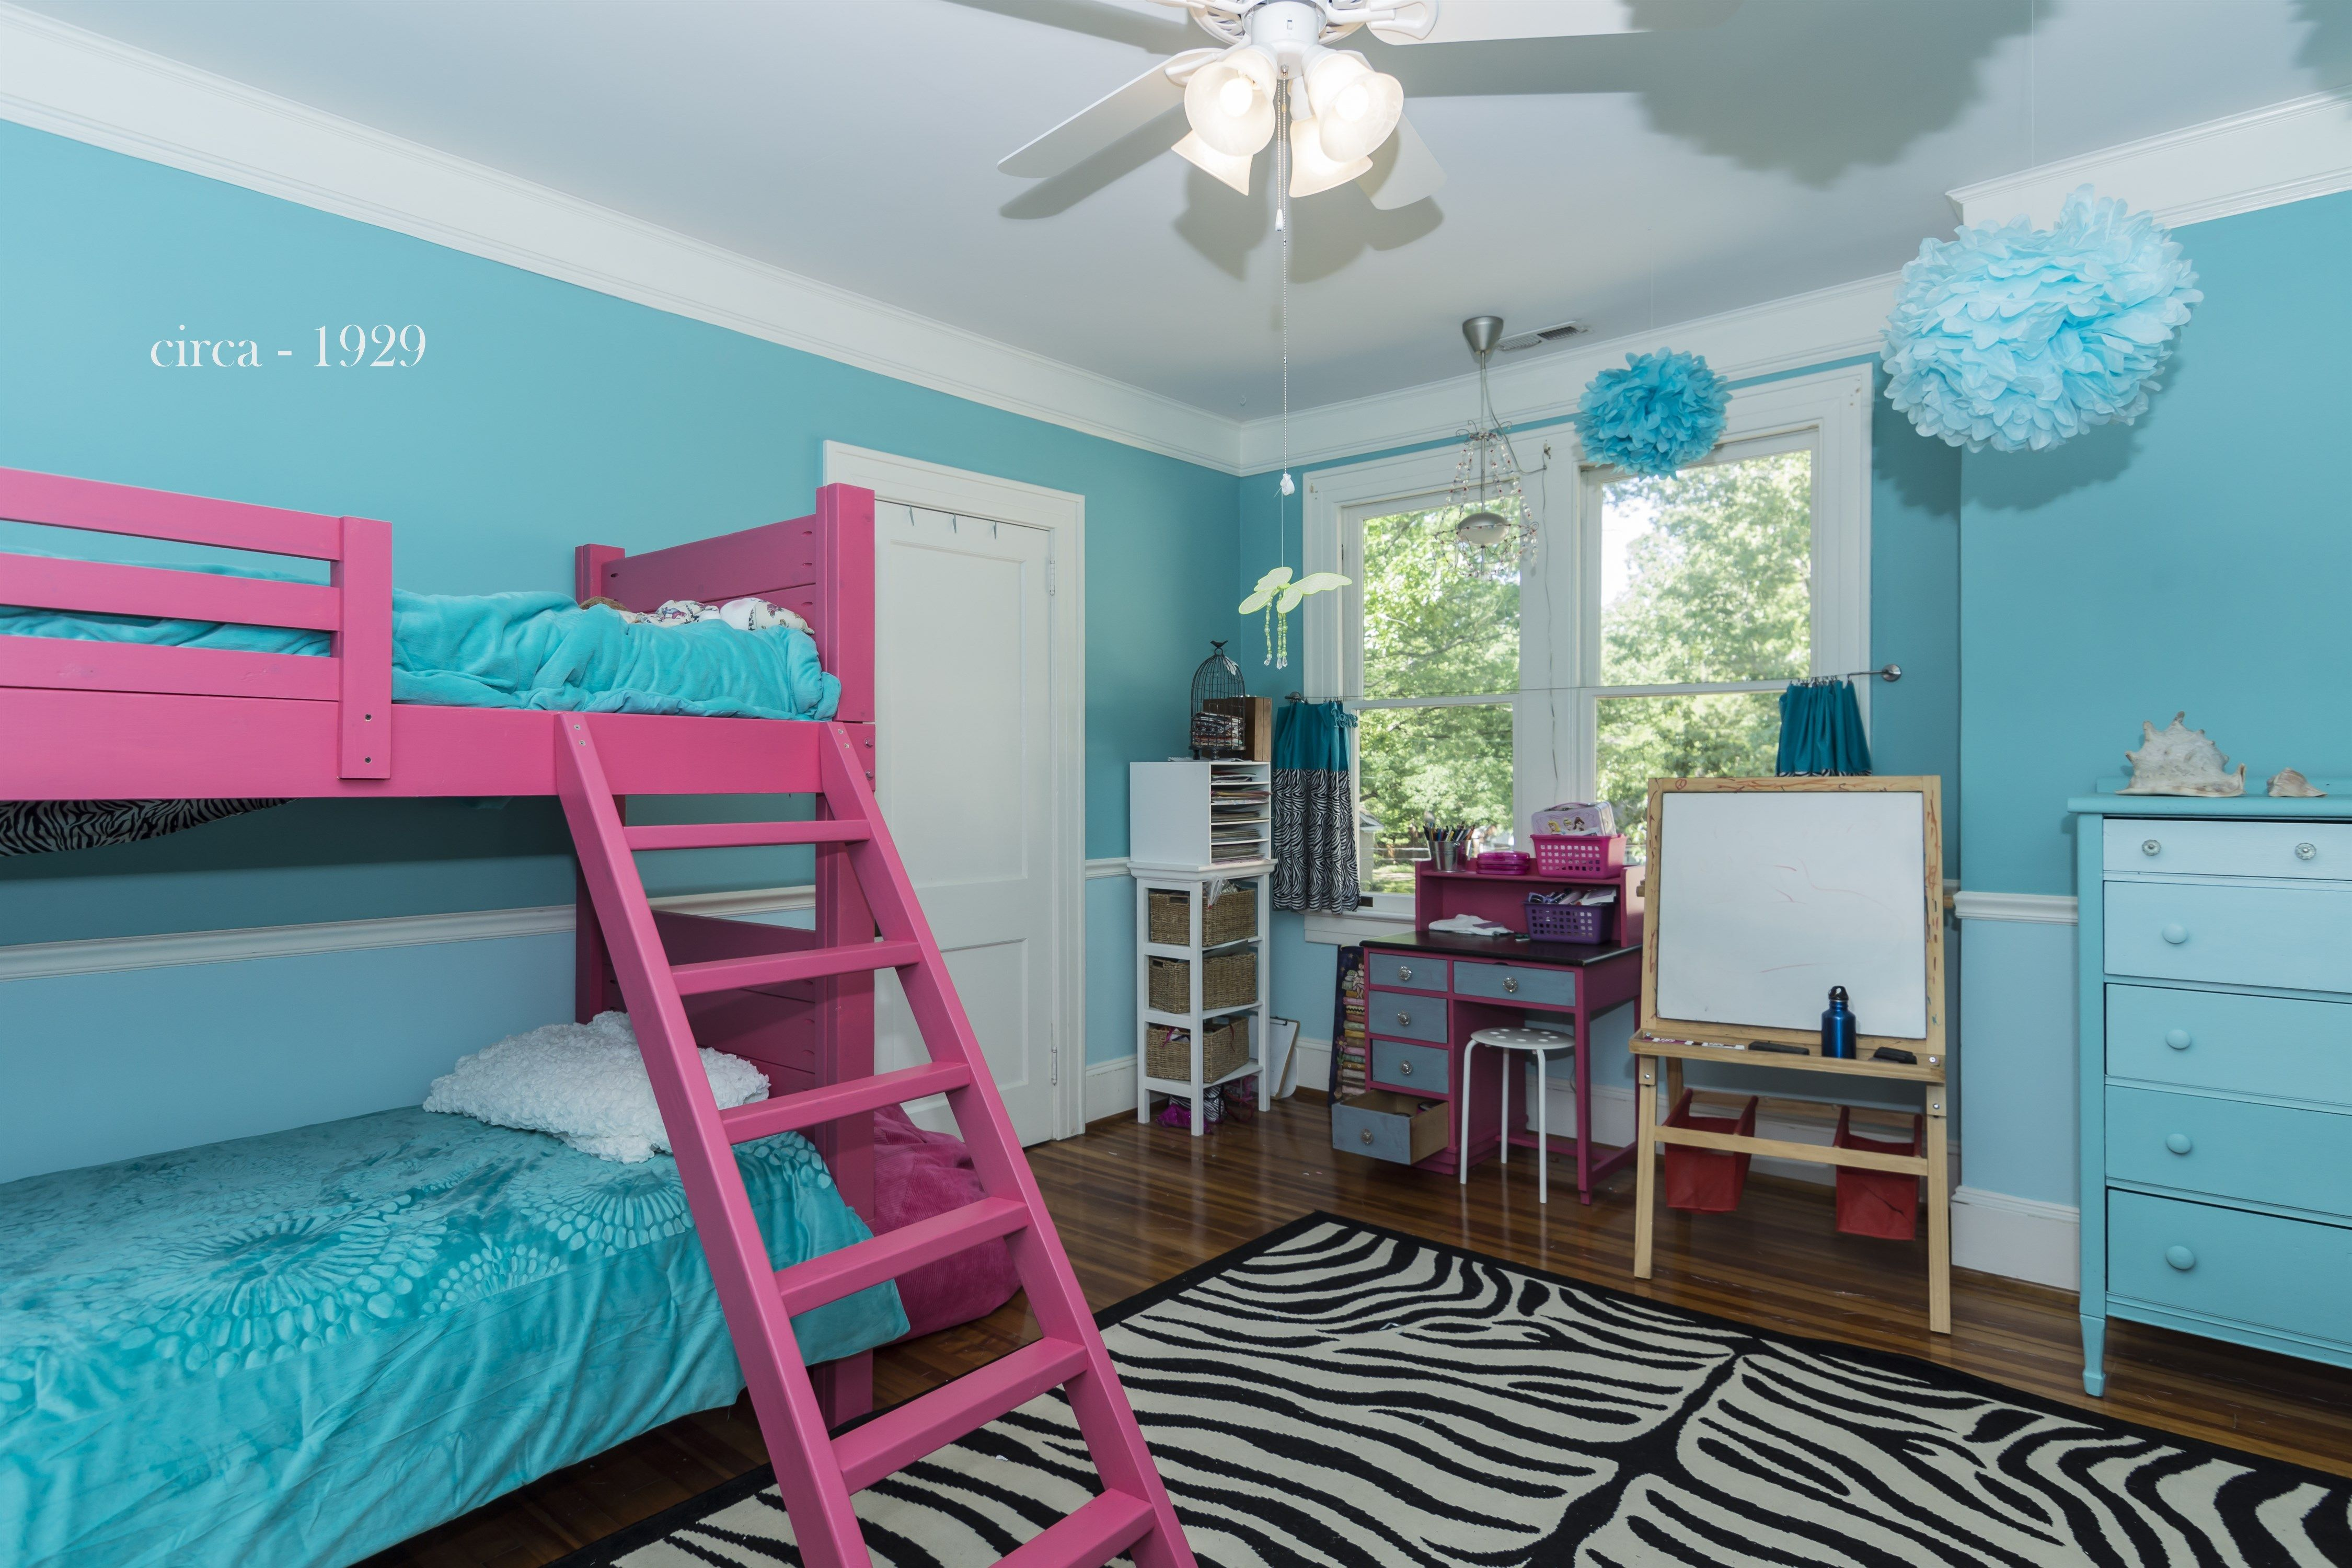 Teal And Pink Room Designs Teal Room Design For